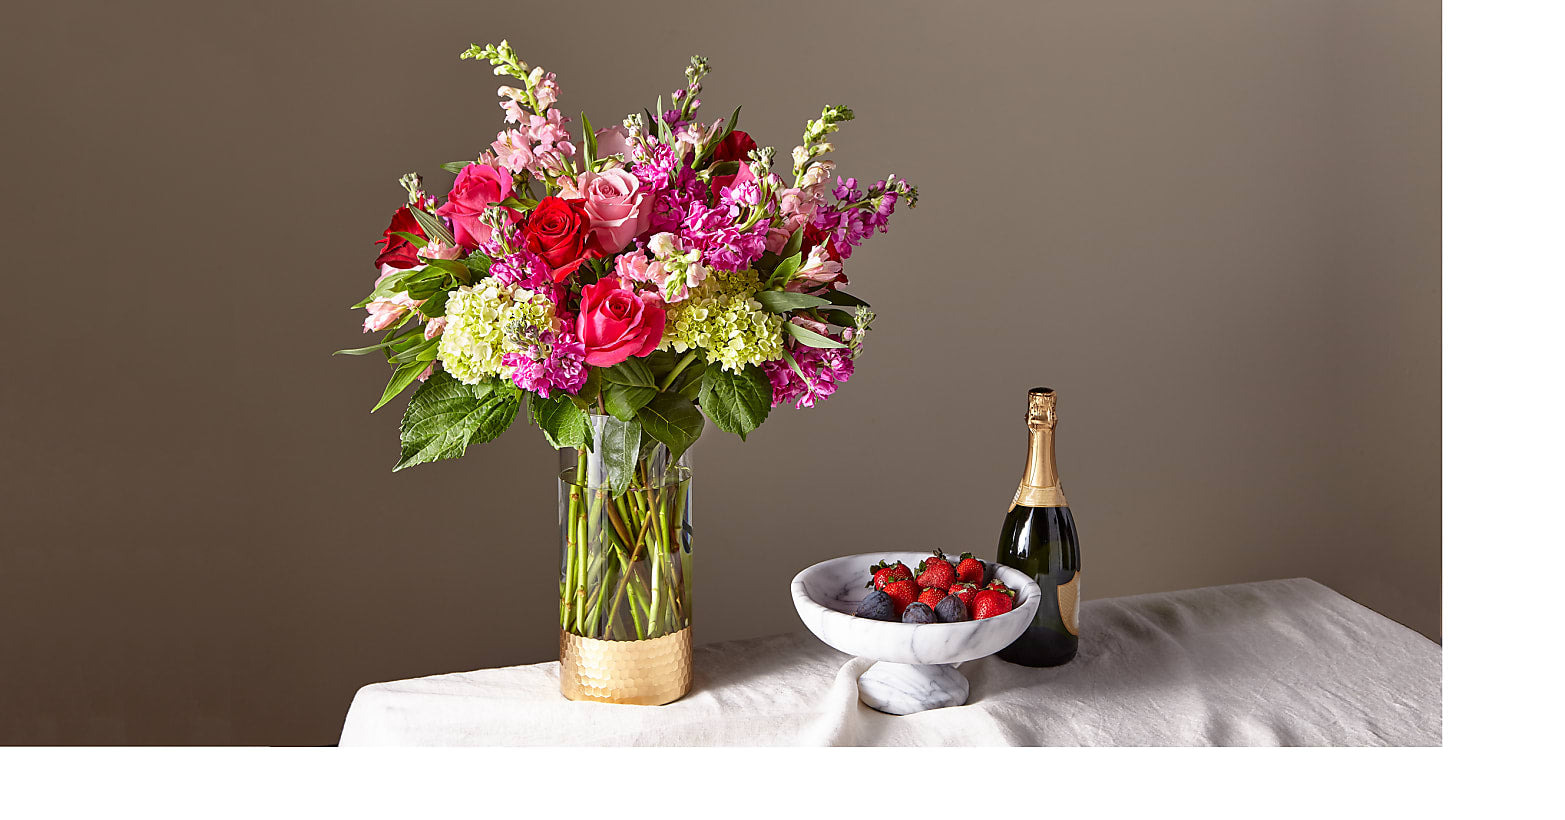 You & Me Luxury Bouquet - Image 3 Of 6